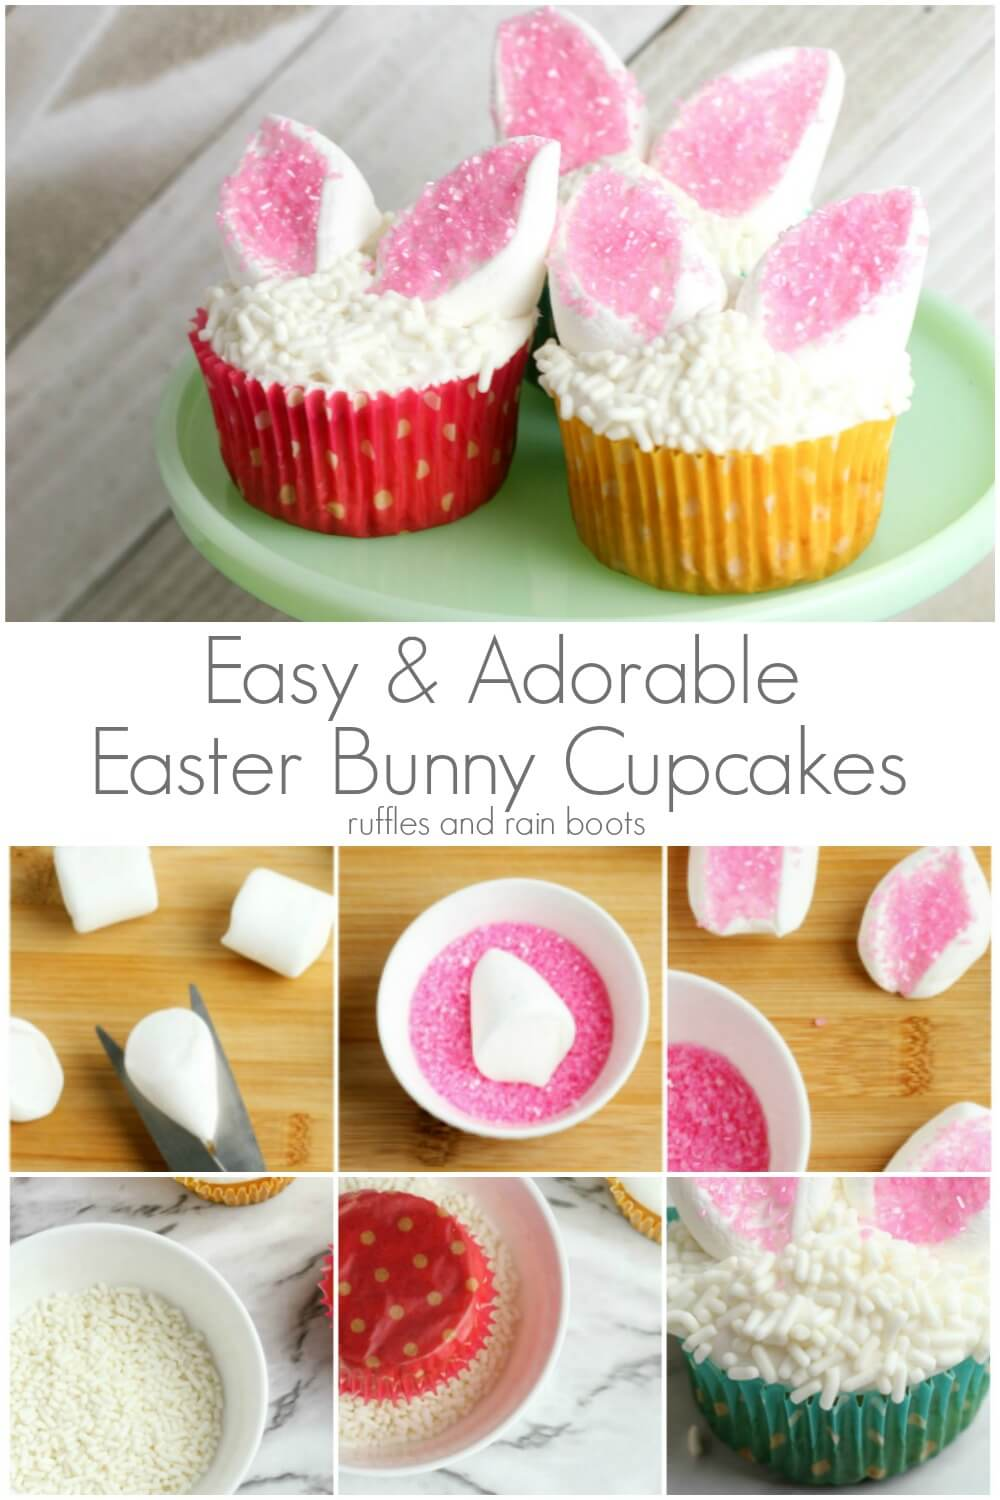 photo collage of Easter bunny cupcakes on top half and bottom half showing step by step ingredients with text in the middle reading easy and adorable easter bunny cupcakes